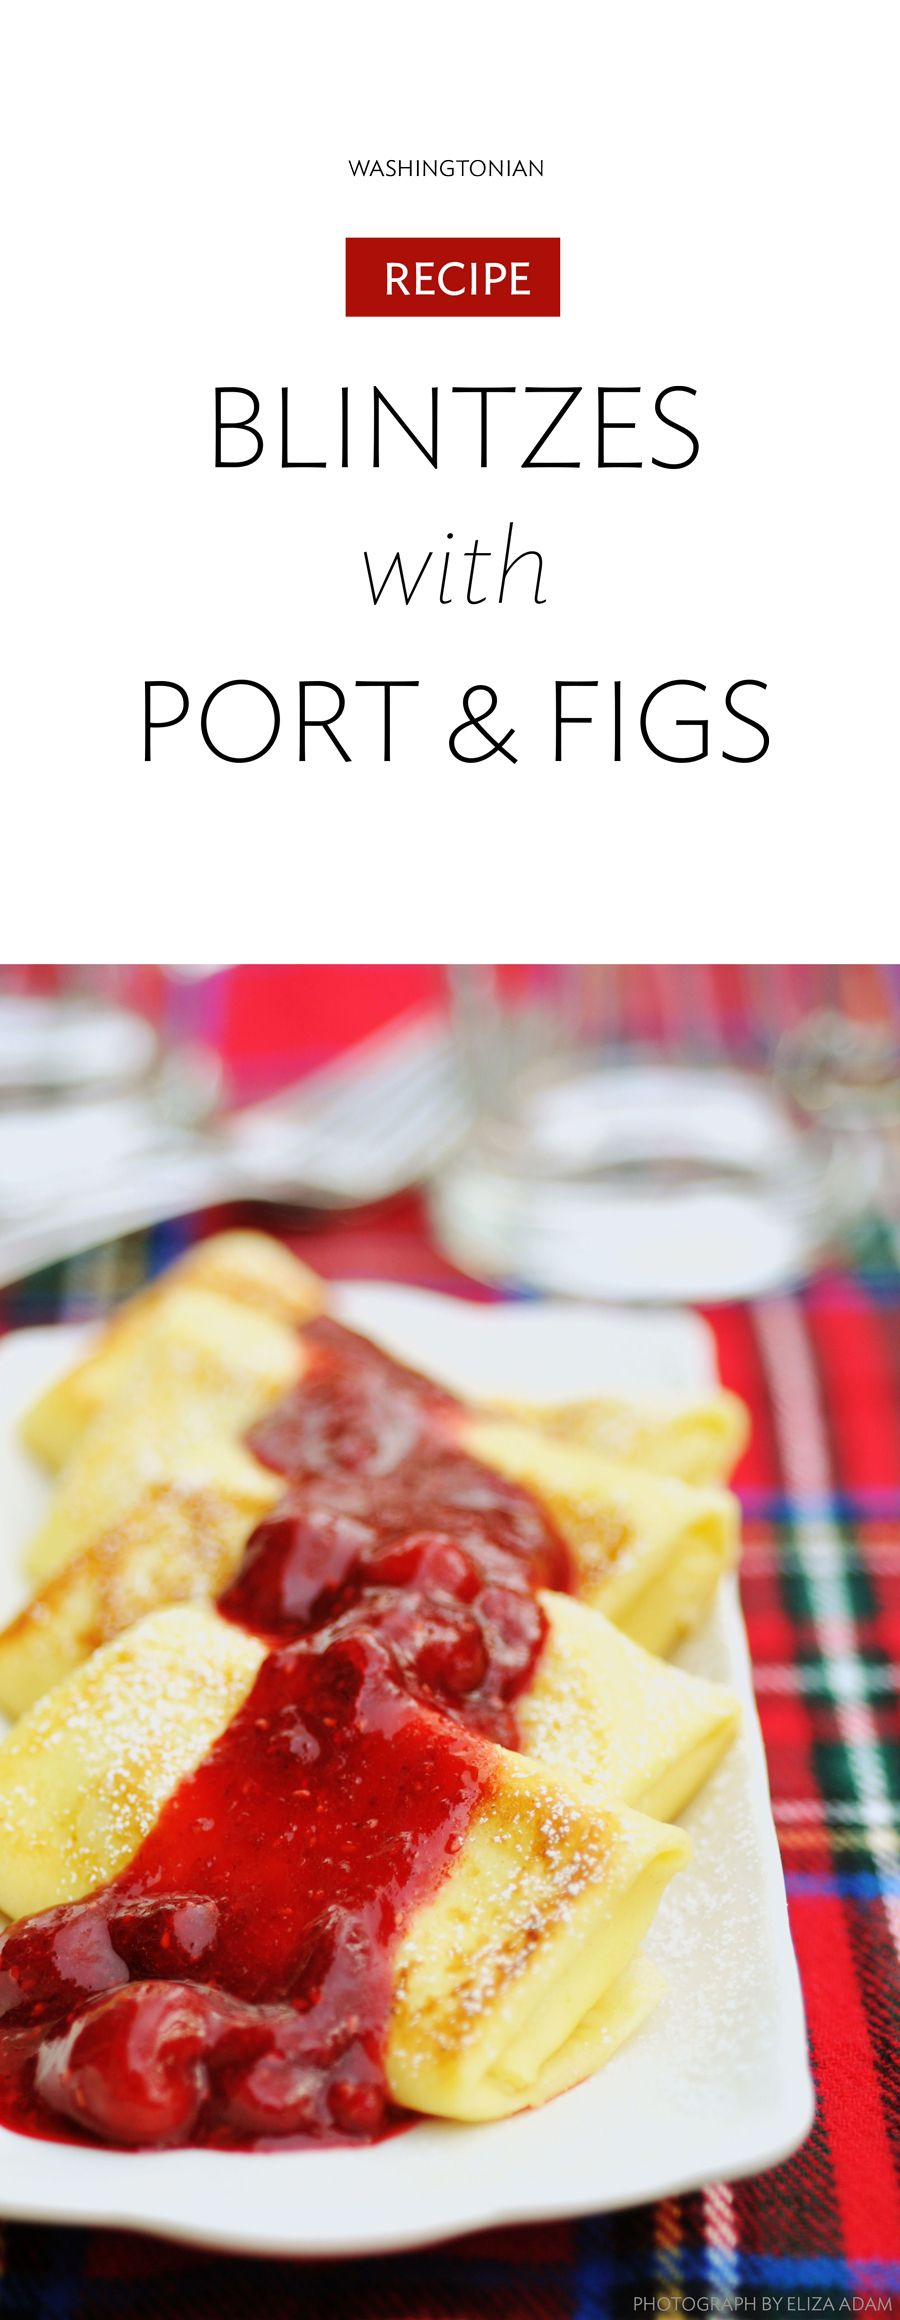 Blintzes With Port And Figs A Preview Recipe From Todd And Ellen Gray S The New Jewish Table Cookbook Washingtonian Dc Recipes Tasty Dishes Blintzes